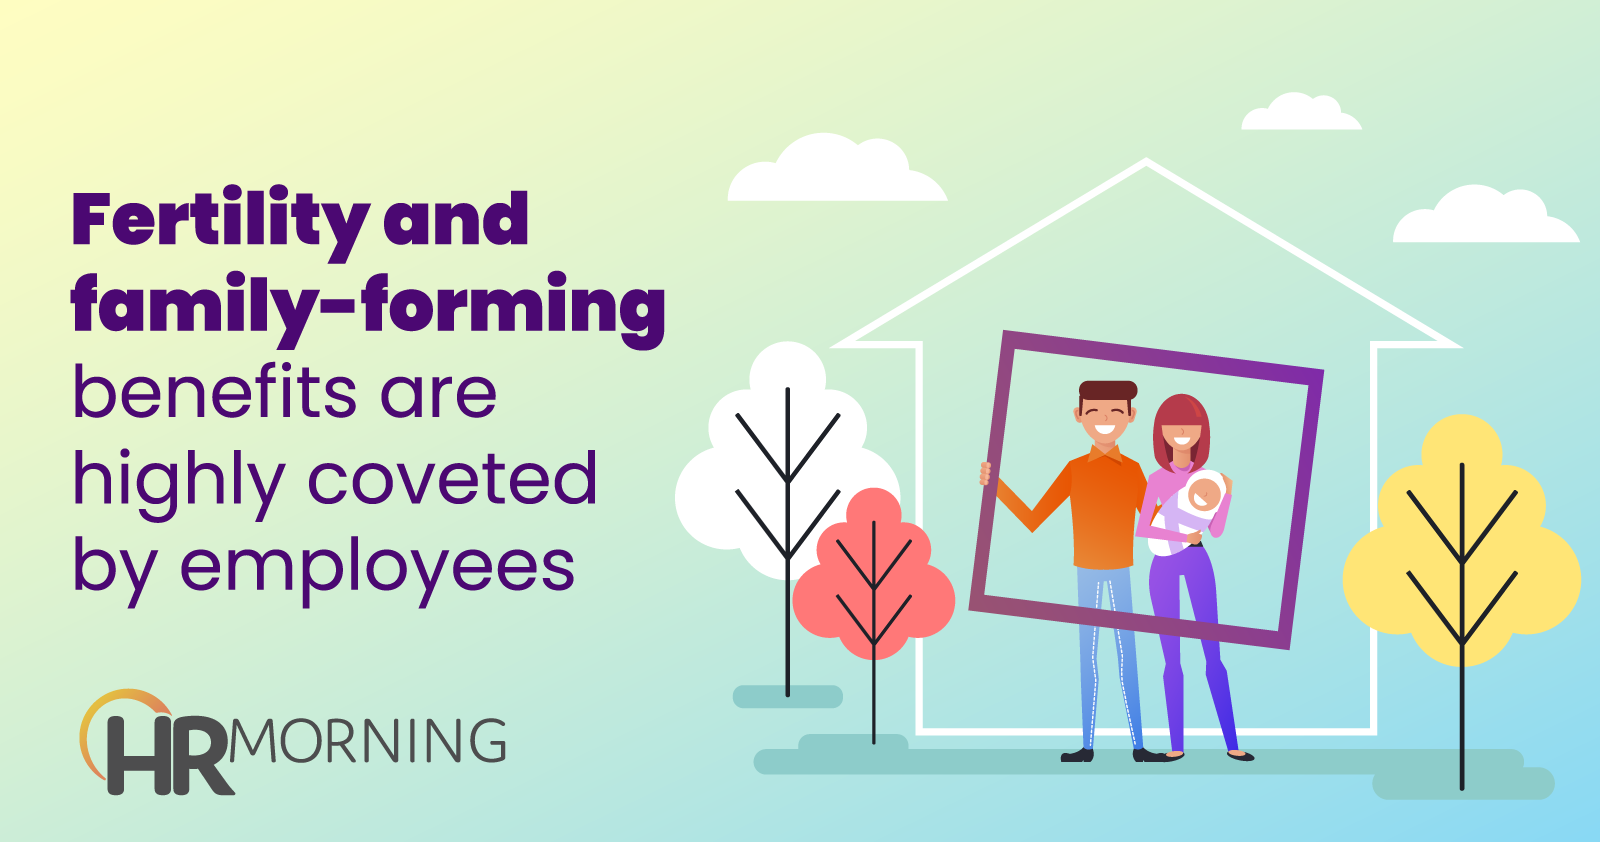 Fertility And Family-forming Benefits Are Highly Coveted By Employees